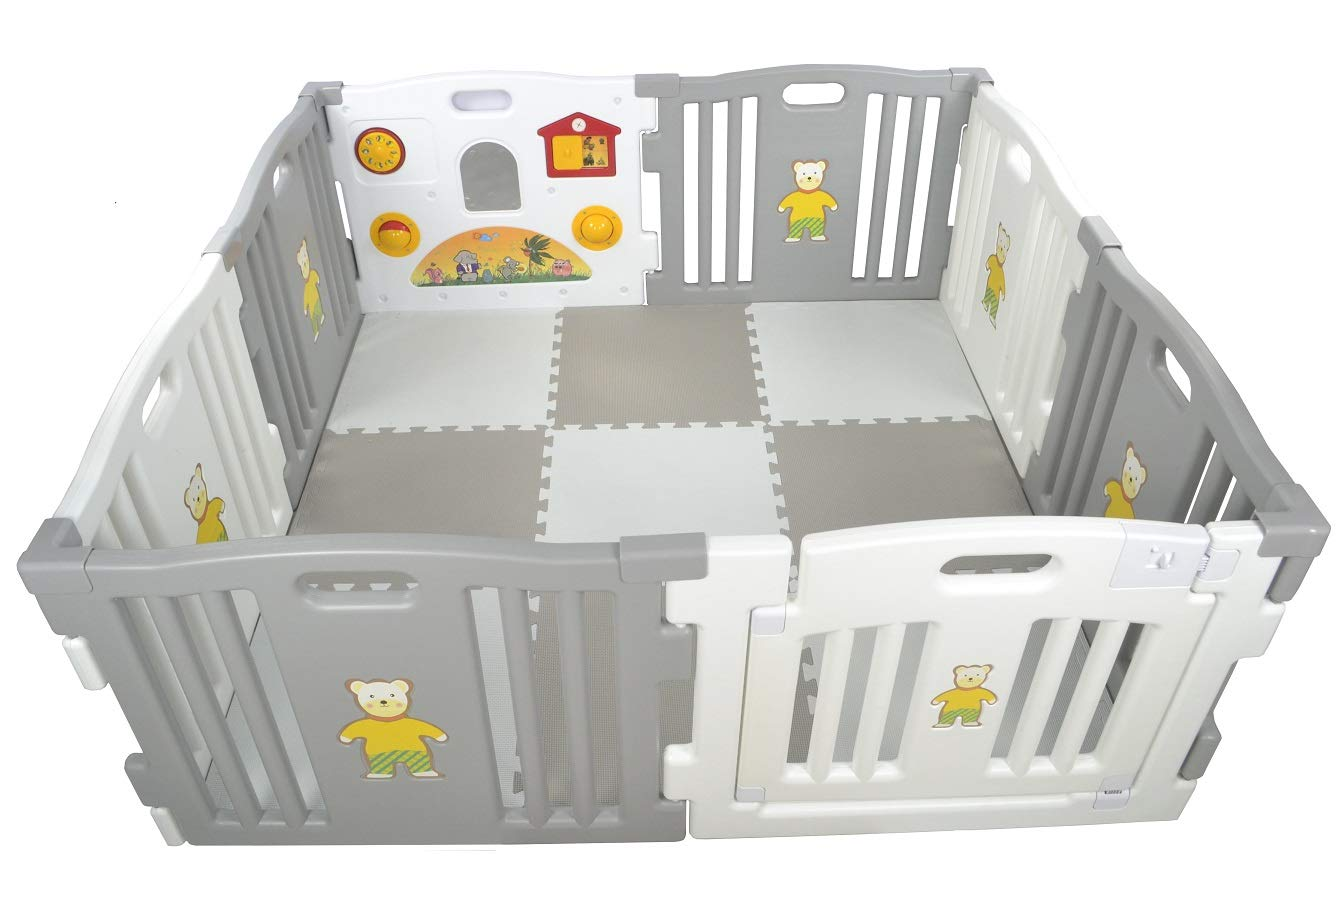 Millhouse Plastic Baby Playpen with Activity Panel with Play Mats Included (Grey & White with Mats) Millhouse Millhouse Plastic Baby Playpen 8 Sides with Activity Panel WITH Grey and White PLAYMATS / 9 Play Mats Included (Individual Size: 49 x 49 x 1 cm / Total Play Mats Size: 148 x 148 x 1 cm) / Suitable age range: 6 - 24 months Playpen with 8 Panels (Including 1 White Door Panel, 1 White Play Panel, 6 Normal Panels - 4 Grey + 2 White) Single Panel Size: 79 x 63 cm / Total Playpen Size: 157 x 157 x 63 cm / Packaging Size: 80 x 41 x 64 cm / PLEASE NOTE: Please note the suction caps will only stick on tile / wooden / laminate flooring and any dust on the floor or suction caps will prevent the suction from working. These are not suitable for sticking on carpet. 2